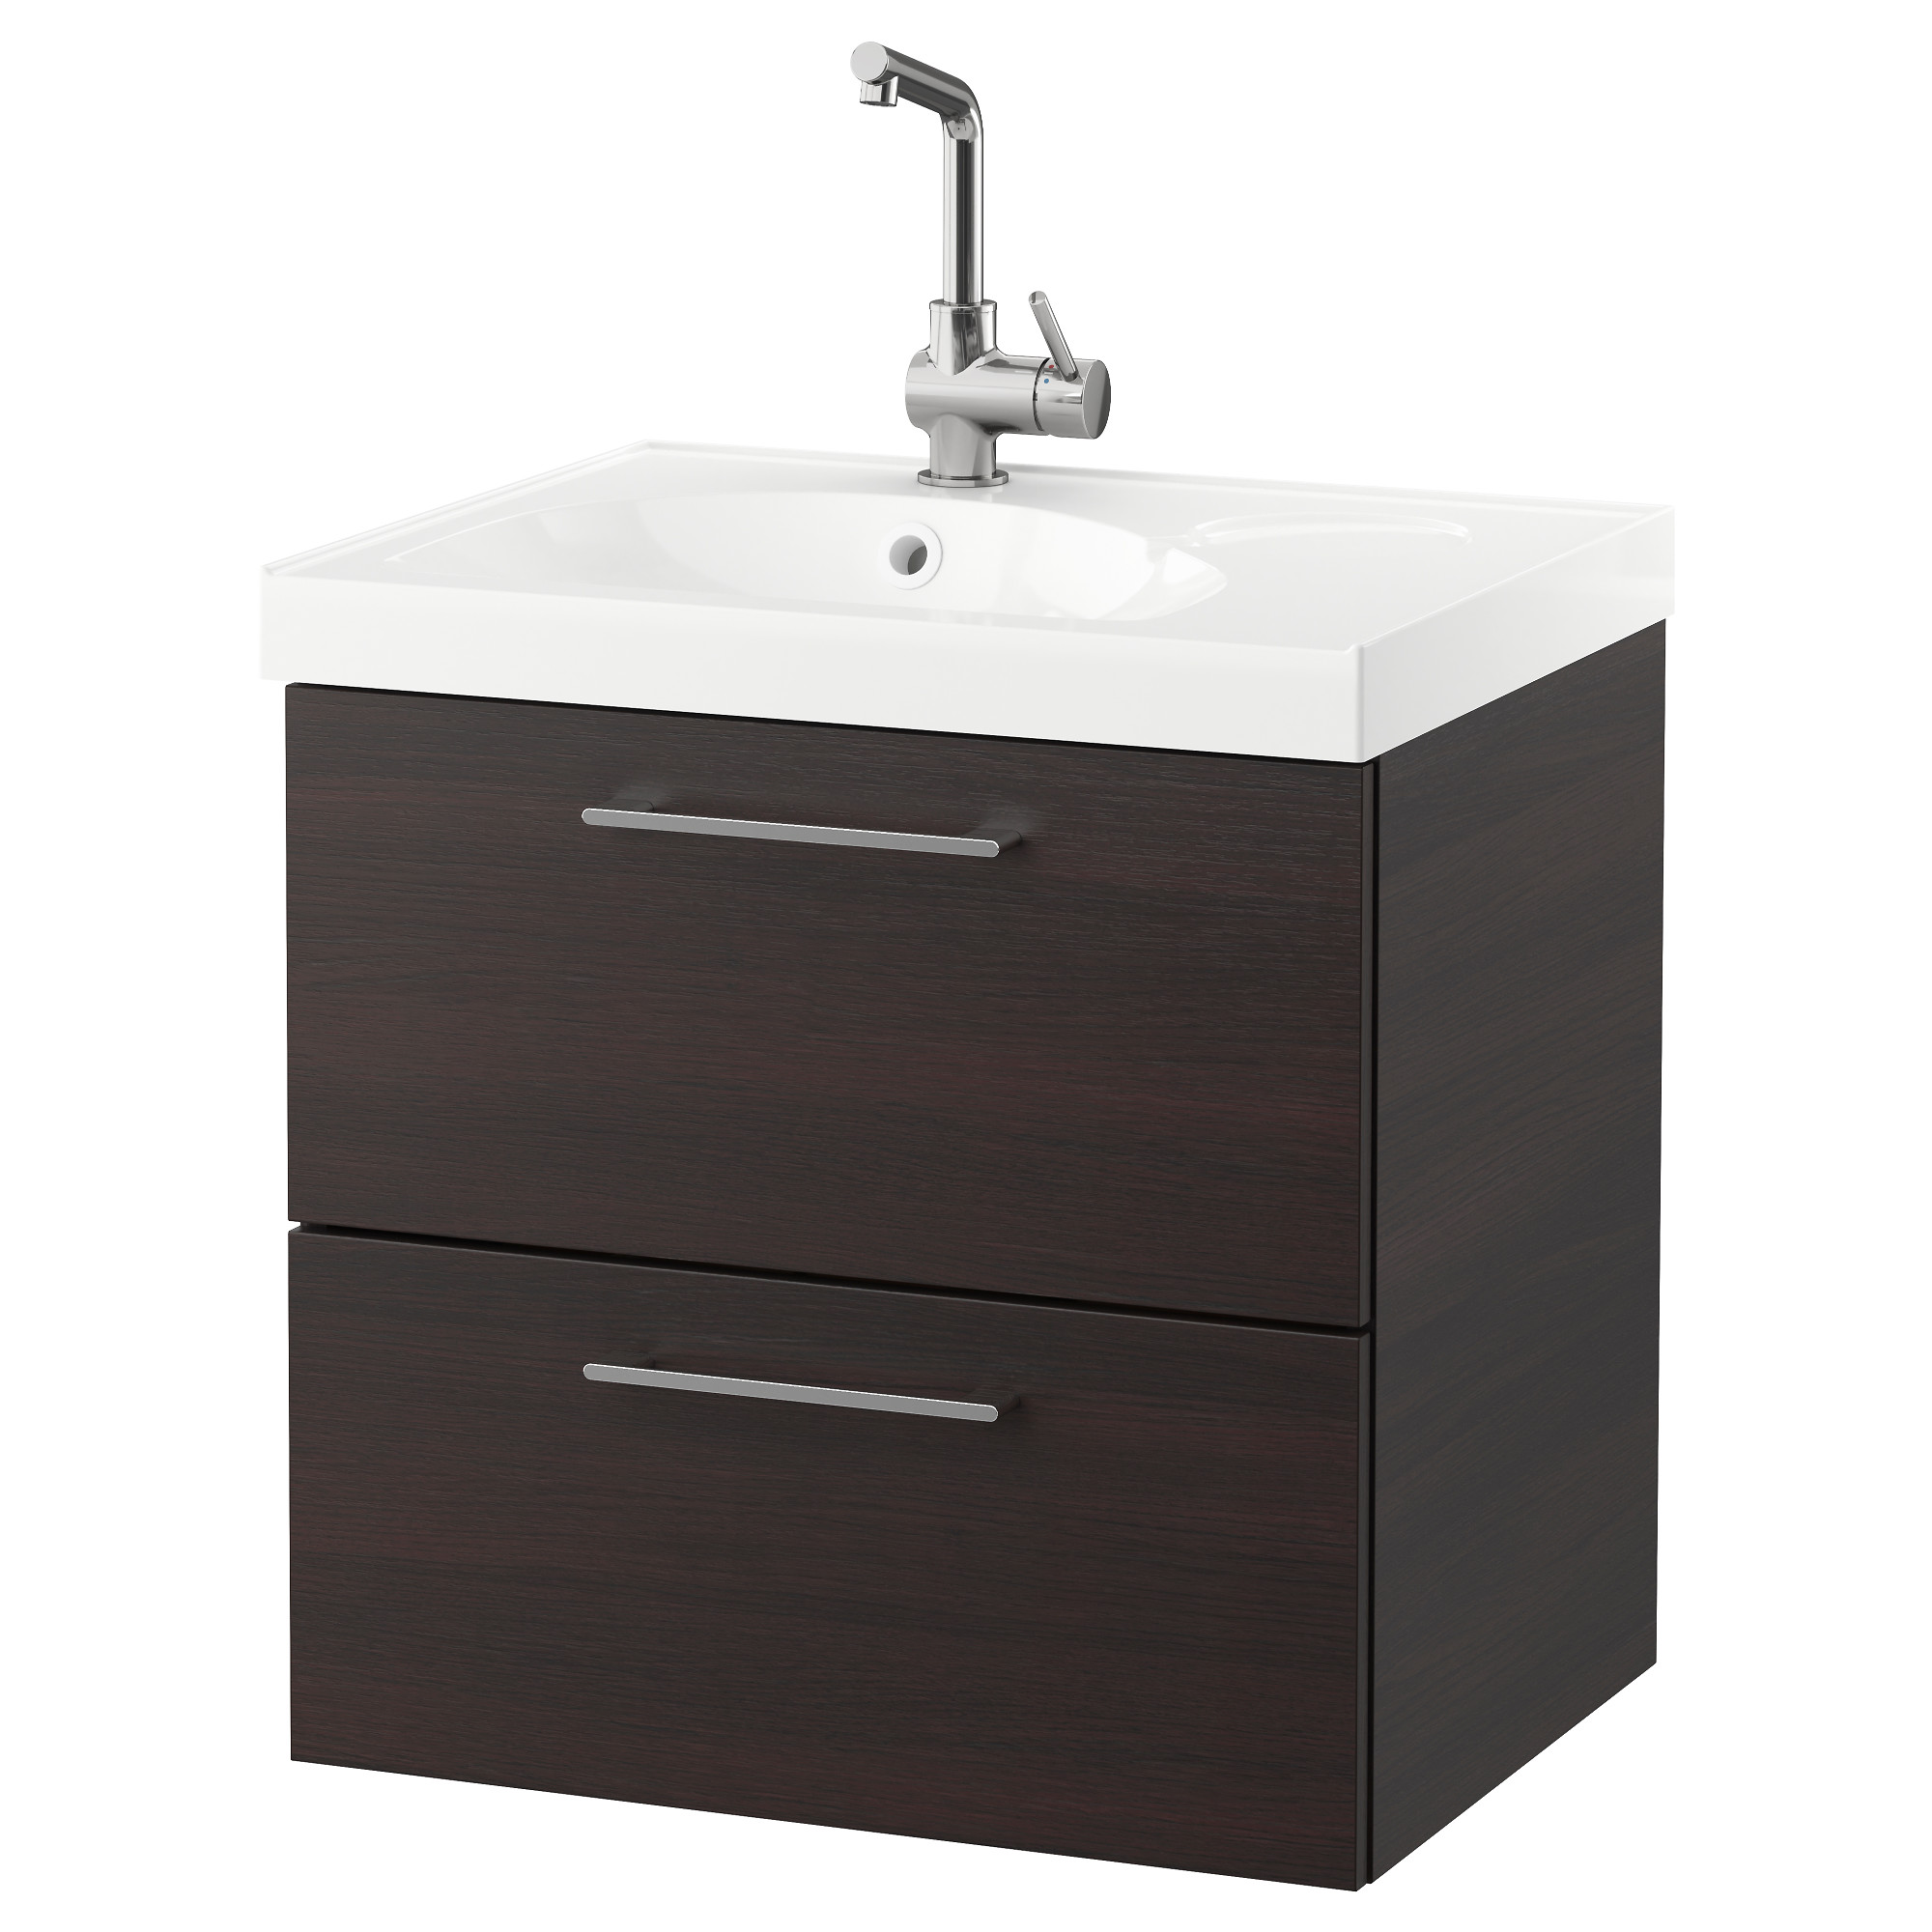 Custom Bathroom Vanity Tops Canada bathroom vanities & countertops - ikea